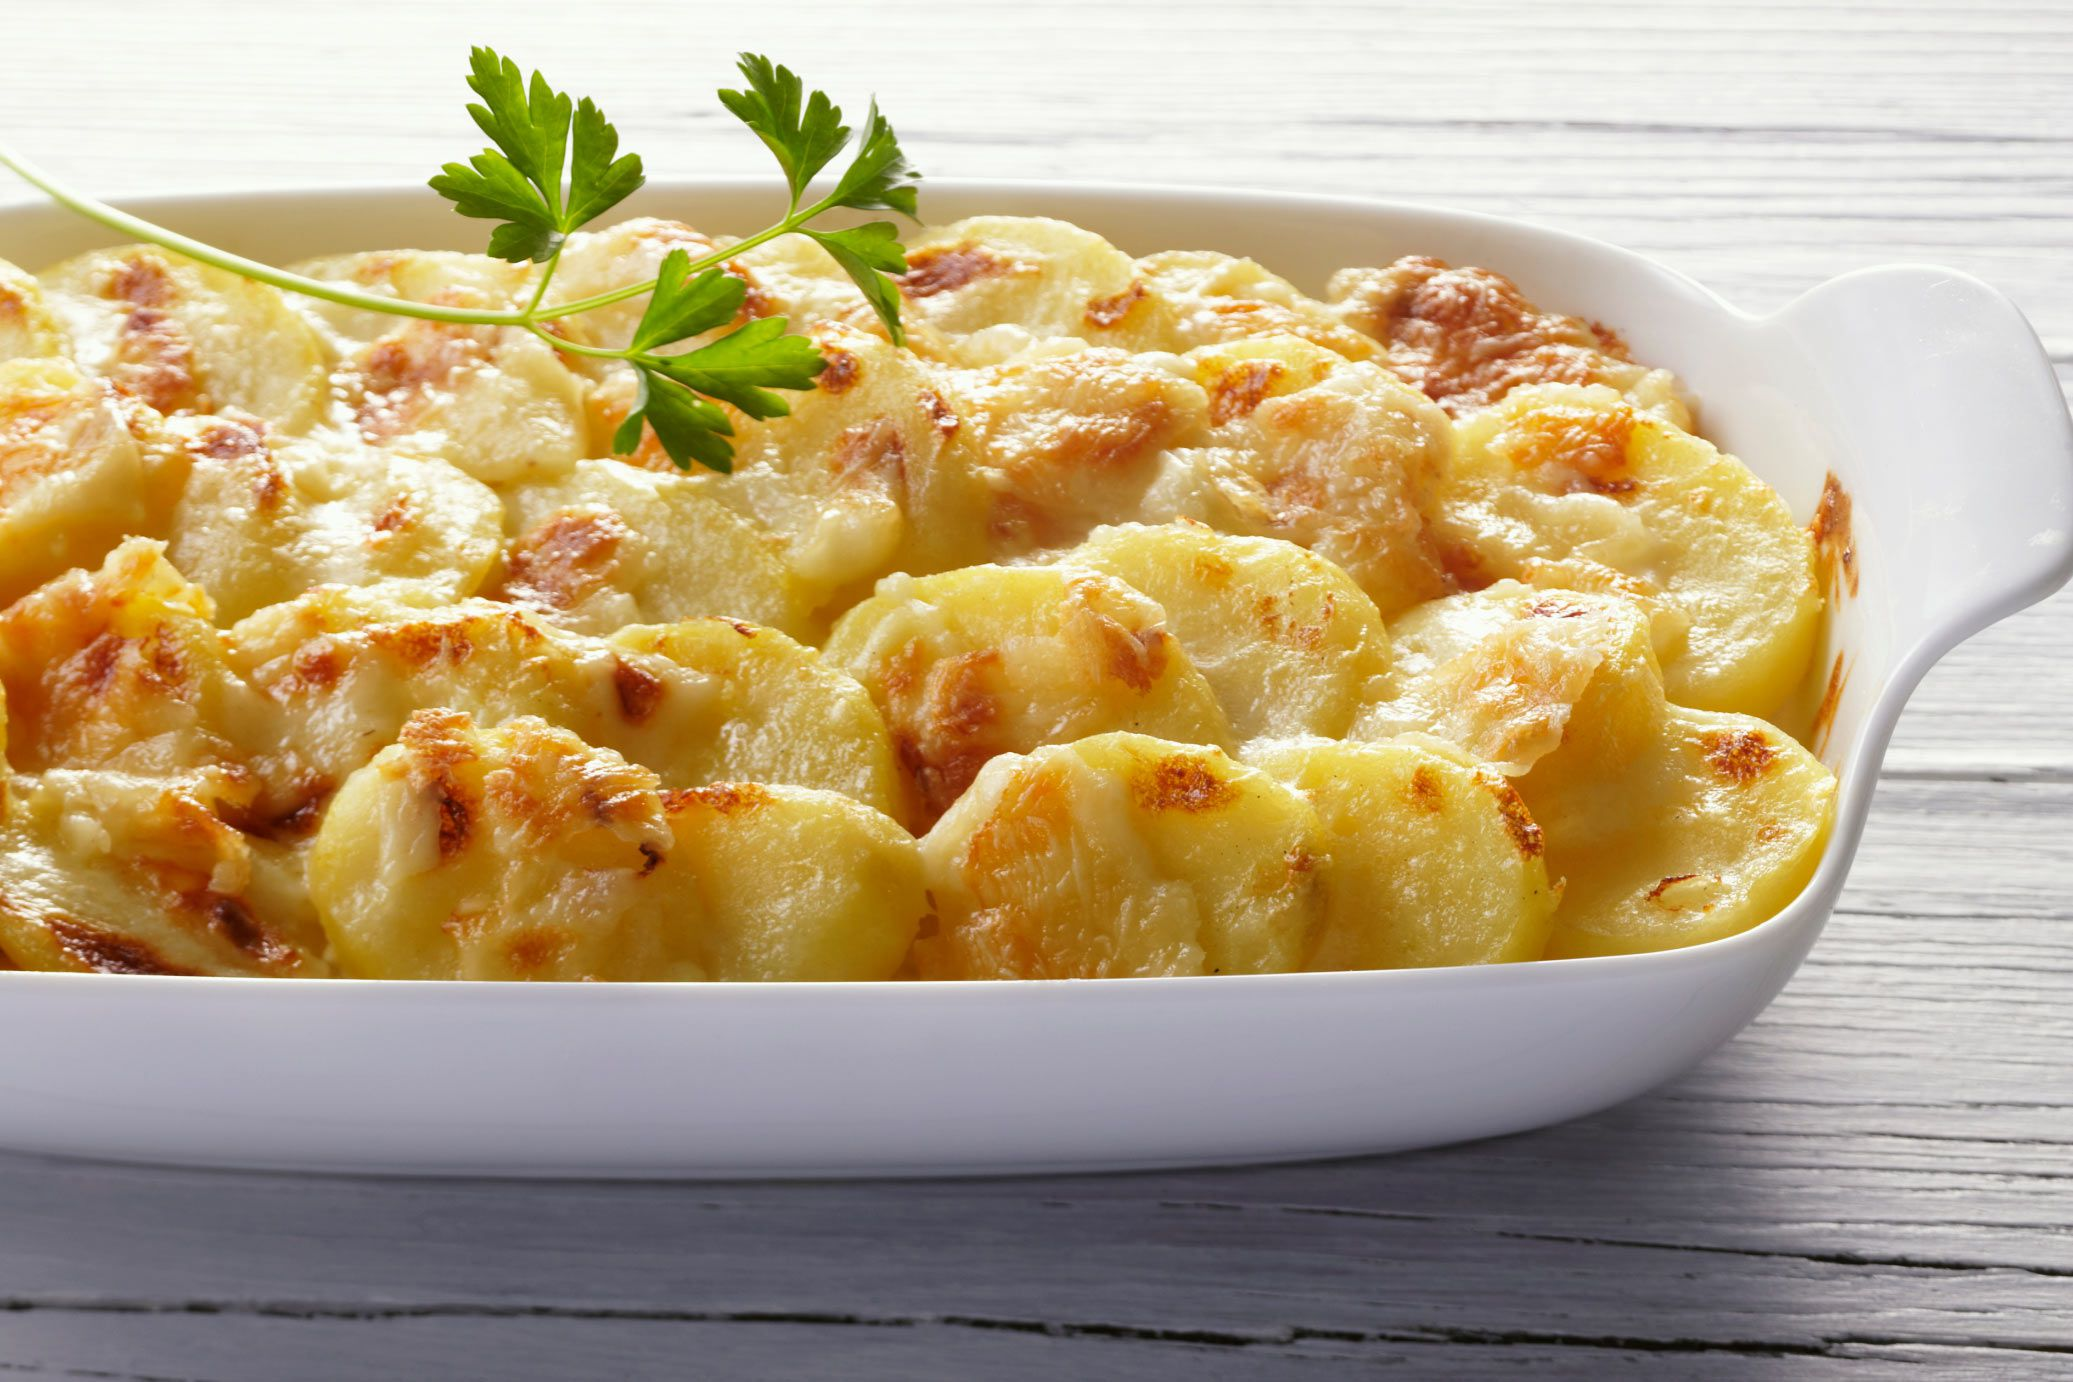 Creamy Scalloped Potatoes With White Sauce And Cheese